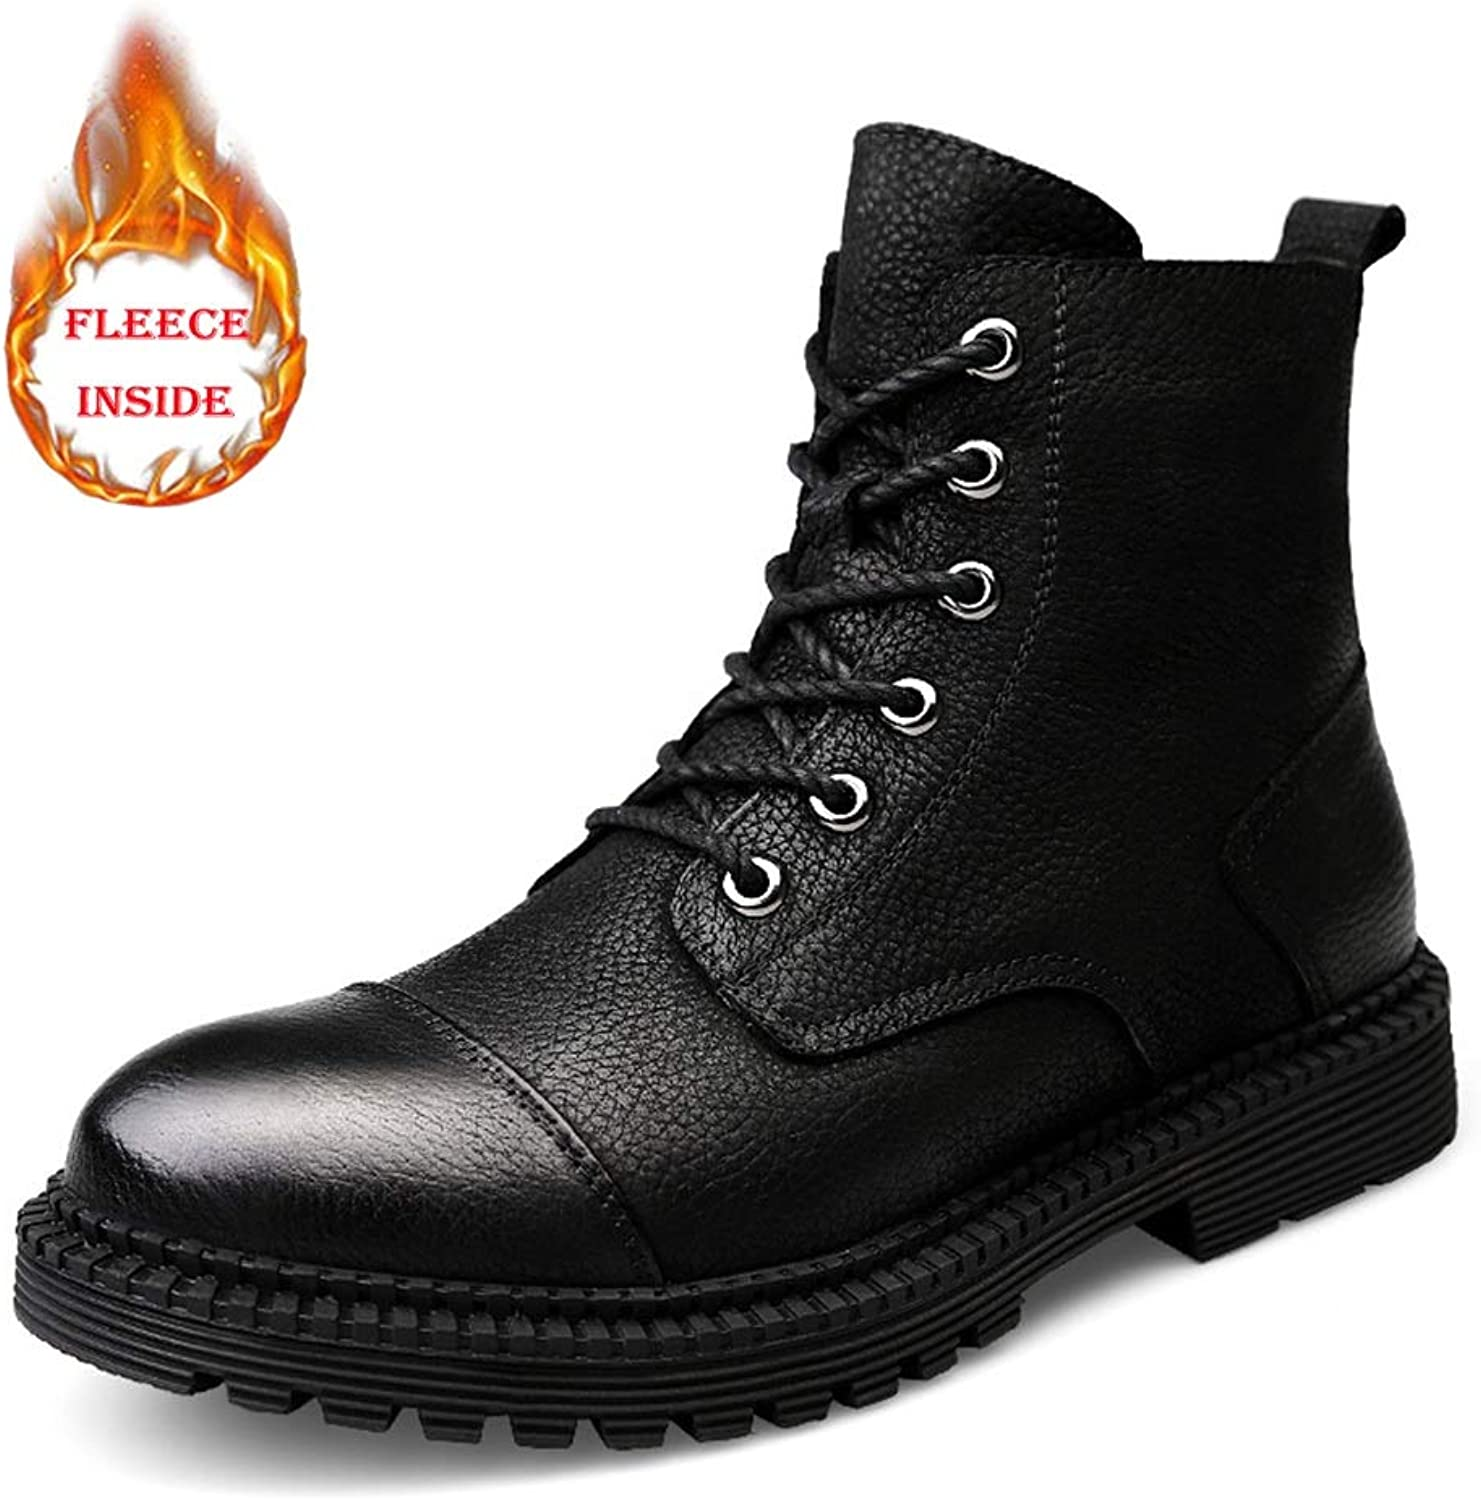 MUMUWU Men's Fashion Ankle Work Boot Casual Comfort Classic winter Fleece Inside Warm High Top Boot Winter